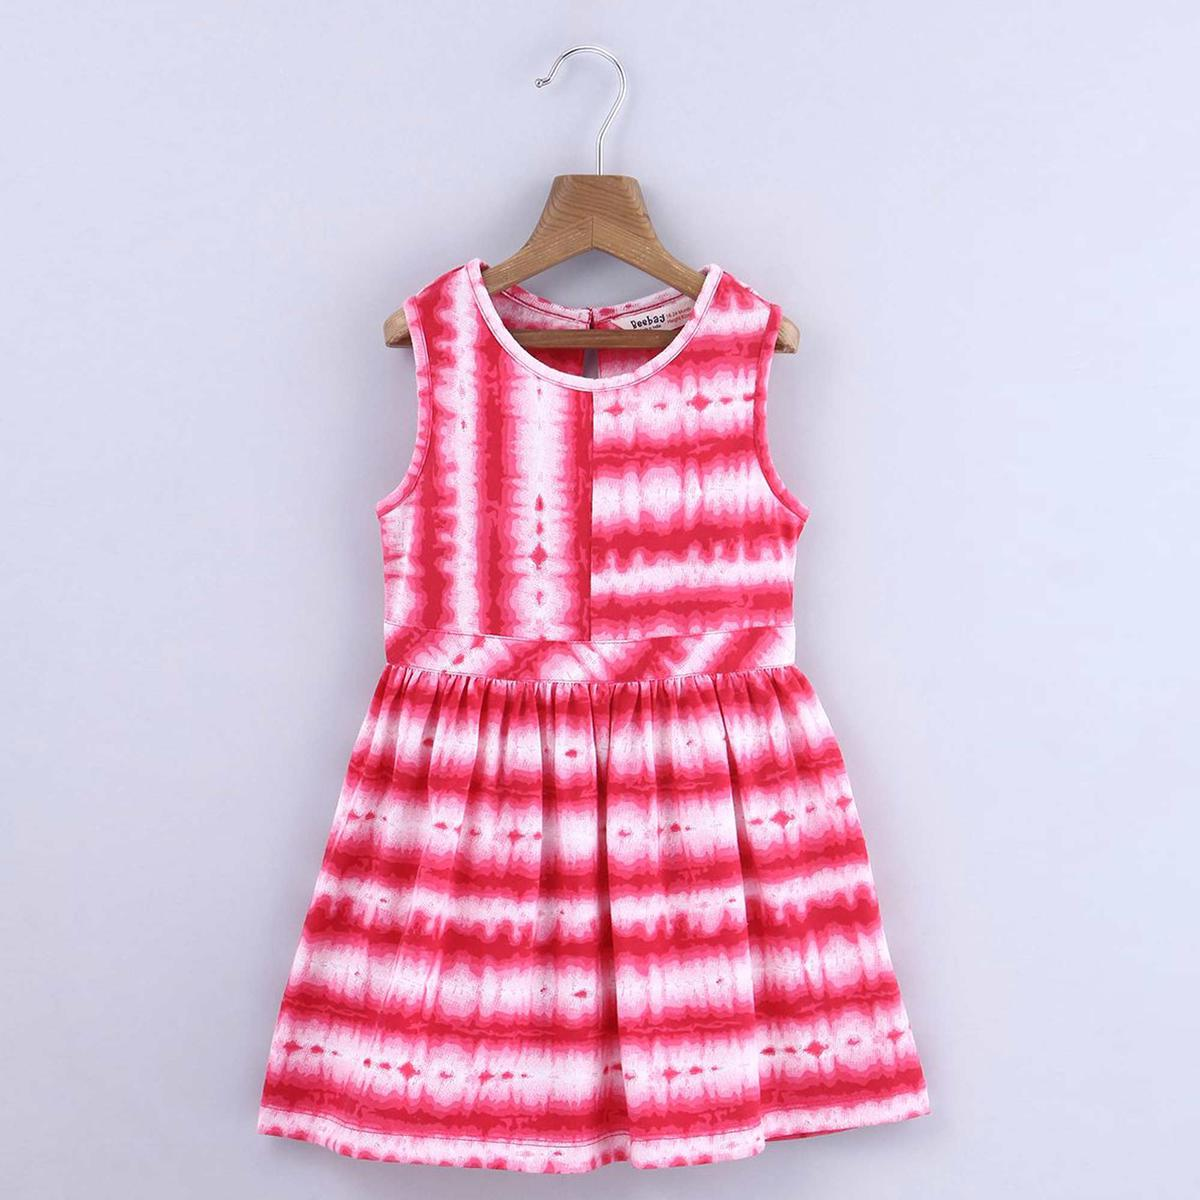 Beebay Pink Tie And Dye Dress For Infants